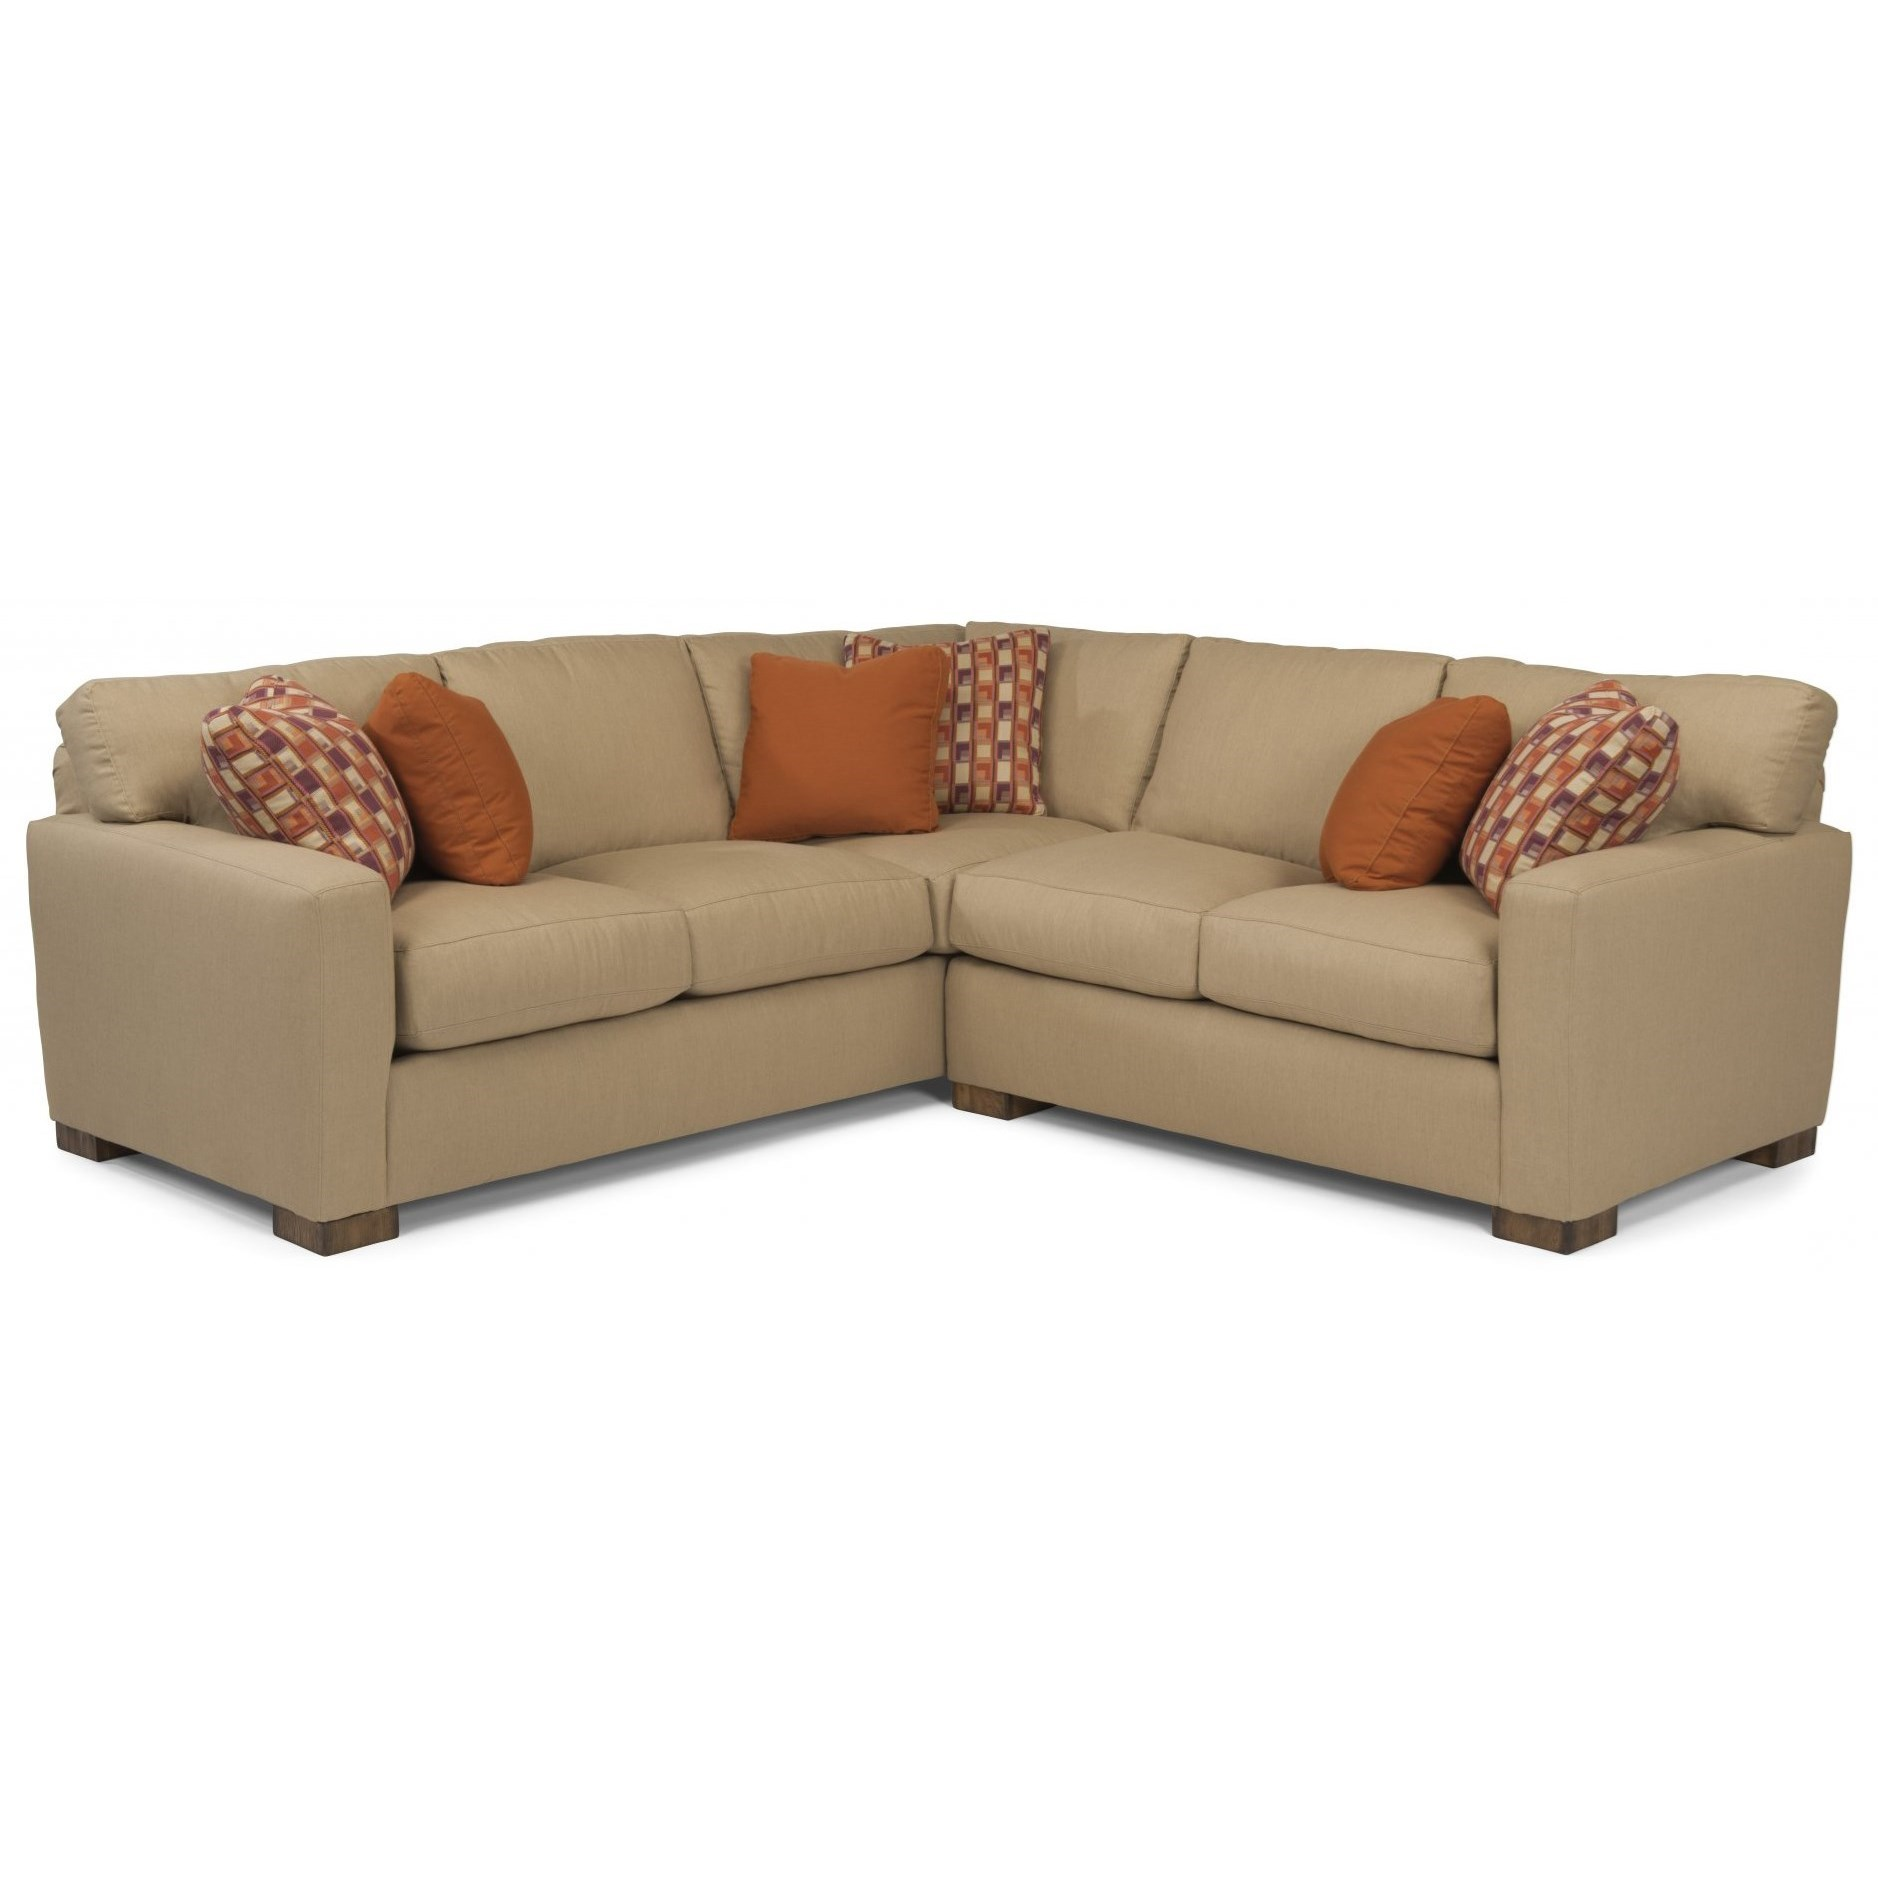 Flexsteel Sofa Locations: Flexsteel Landon Contemporary 4 Seat Sectional Sofa